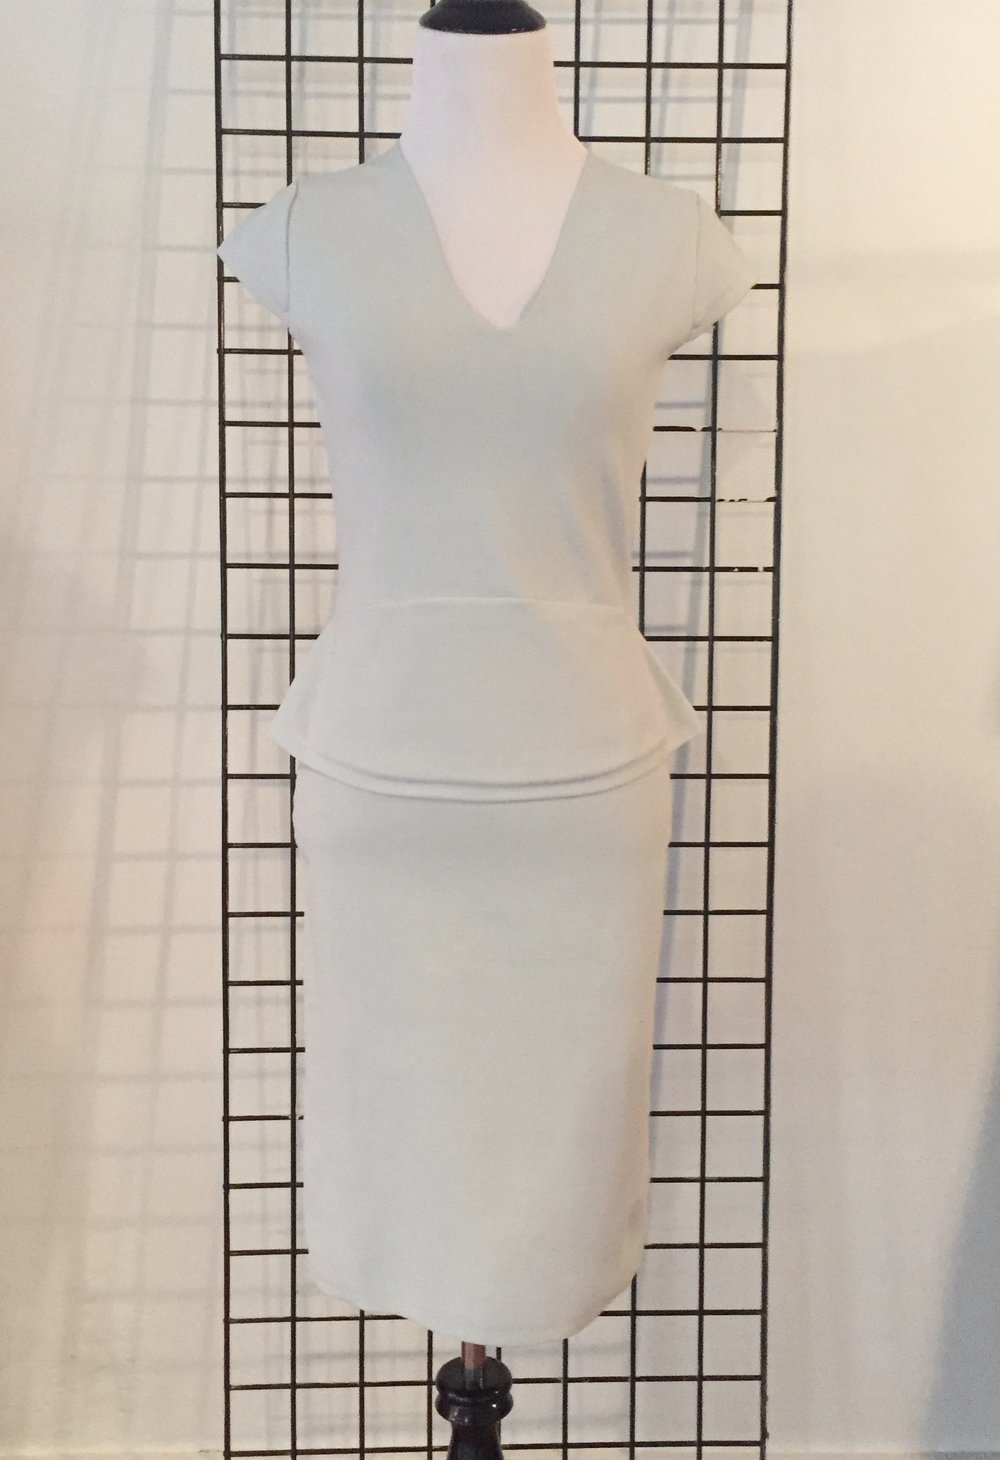 This Narciso Rodriguez silver-blue knit dress is a new arrival at Top Drawer.  It's new with tags and is a size 42 (or US 6).